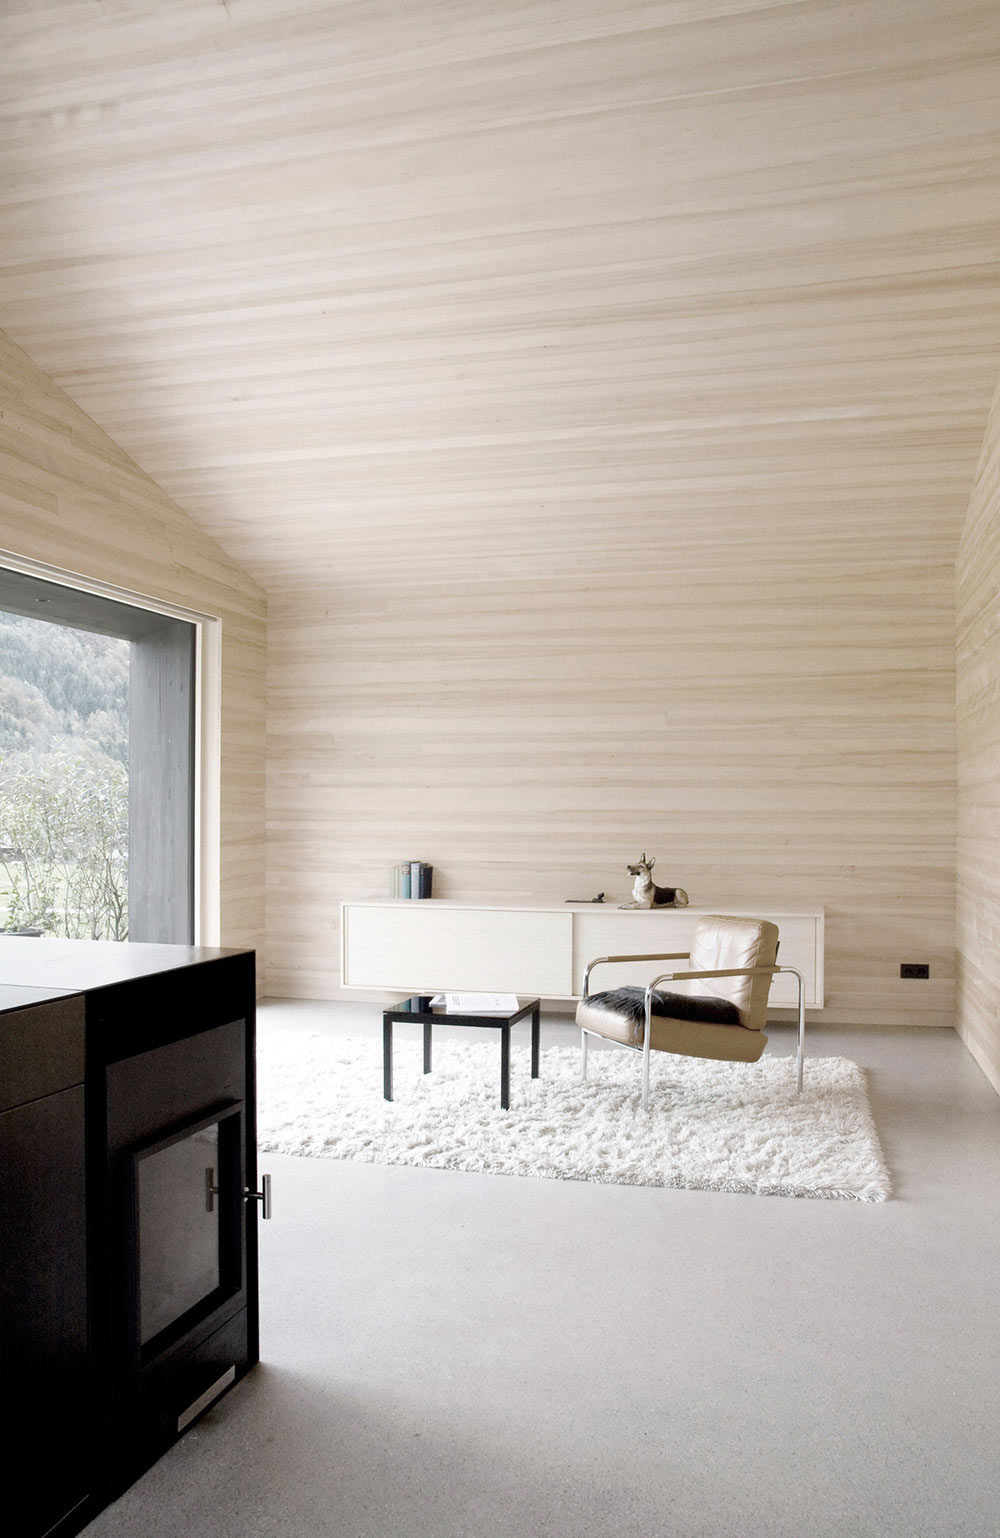 Modern Fireplace, Rug, House for Gudrun in Mellau, Austria